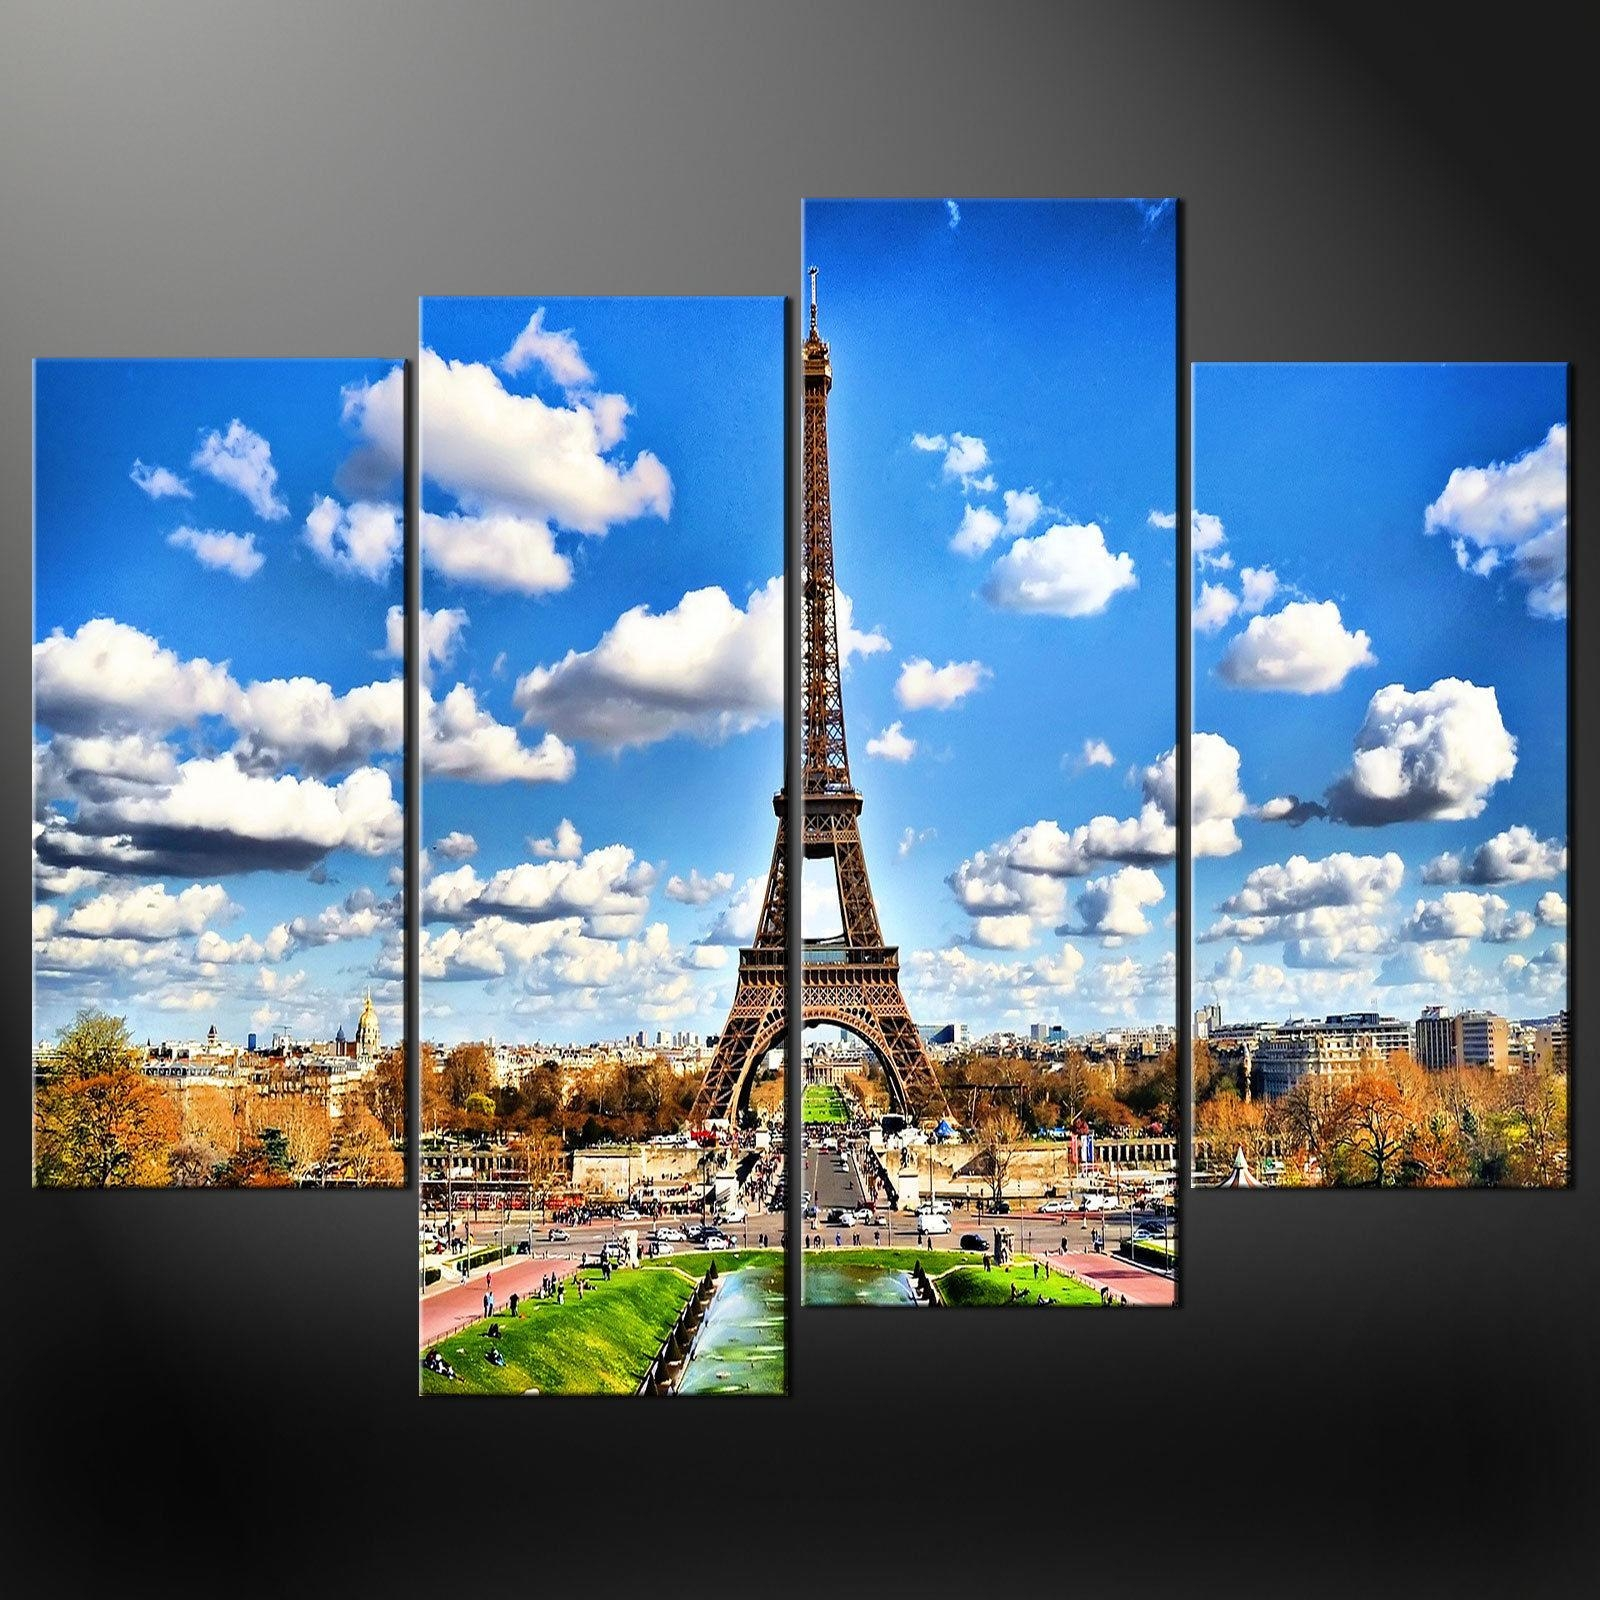 Paris Eiffel Tower Canvas Wall Art Pictures Prints Larger Sizes Throughout Eiffel Tower Wall Art (View 16 of 20)